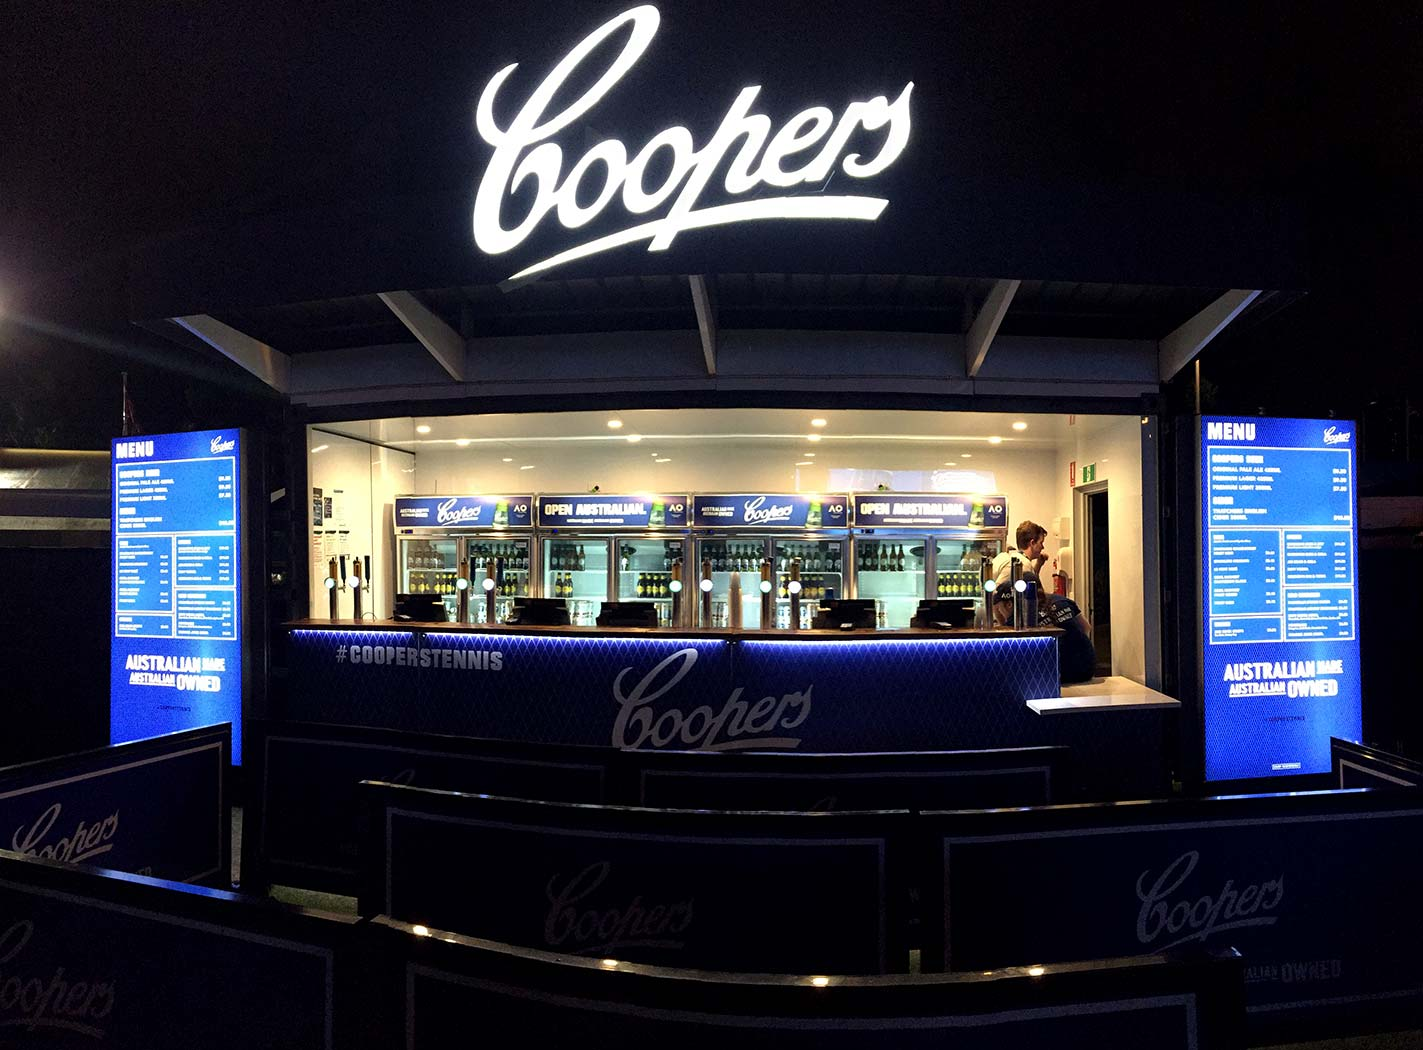 Coopers-20ft-Shipping-Container-Bar-4